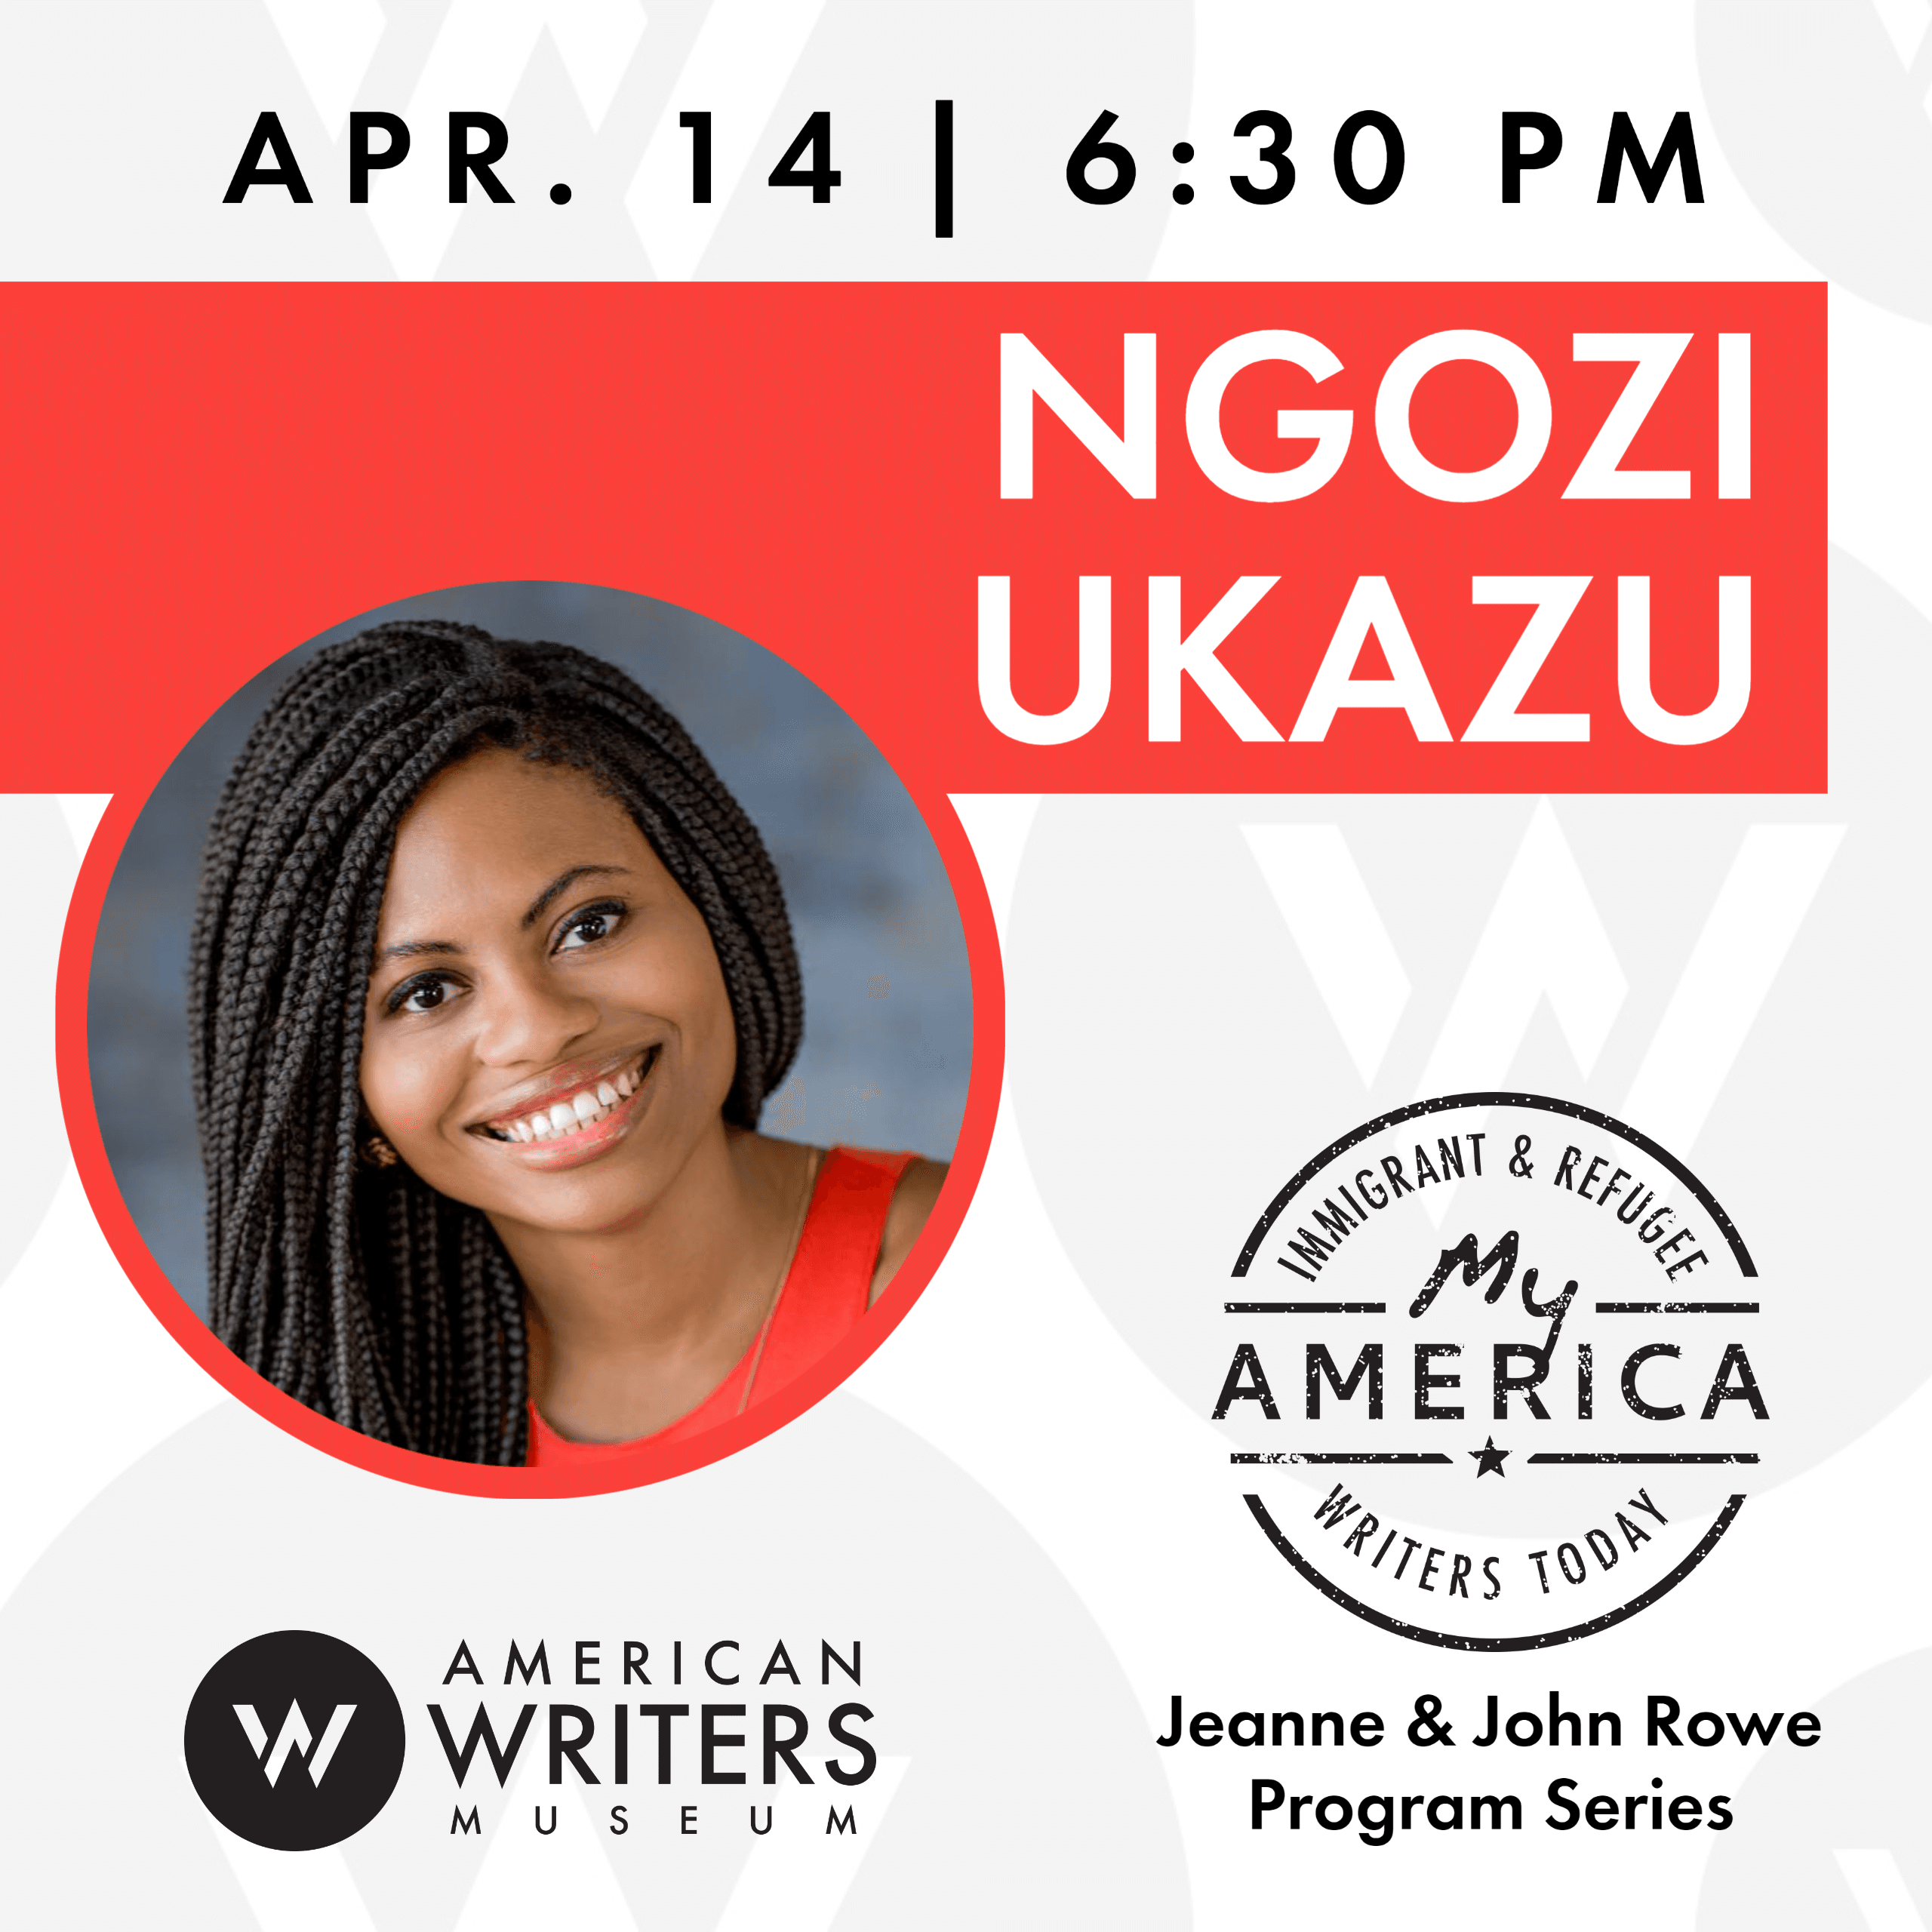 Ngozi Ukazu book reading and signing at the American Writers Museum in Chicago on April 14